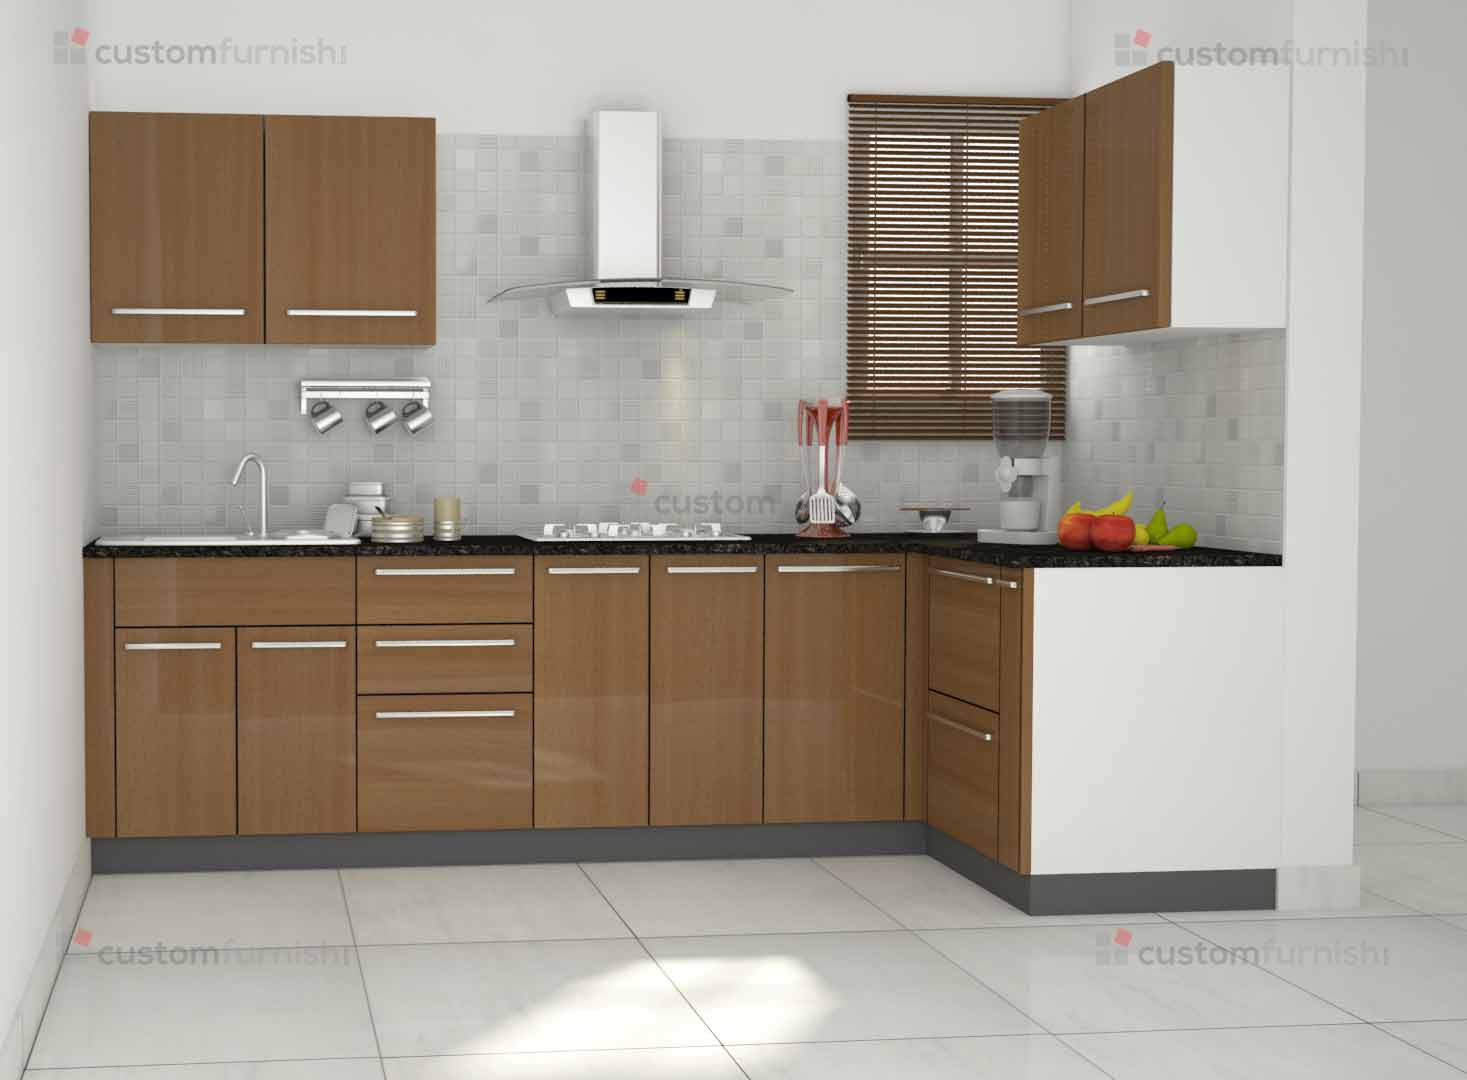 Modular kitchen design l shape crowdbuild for for Kitchen designs with pictures